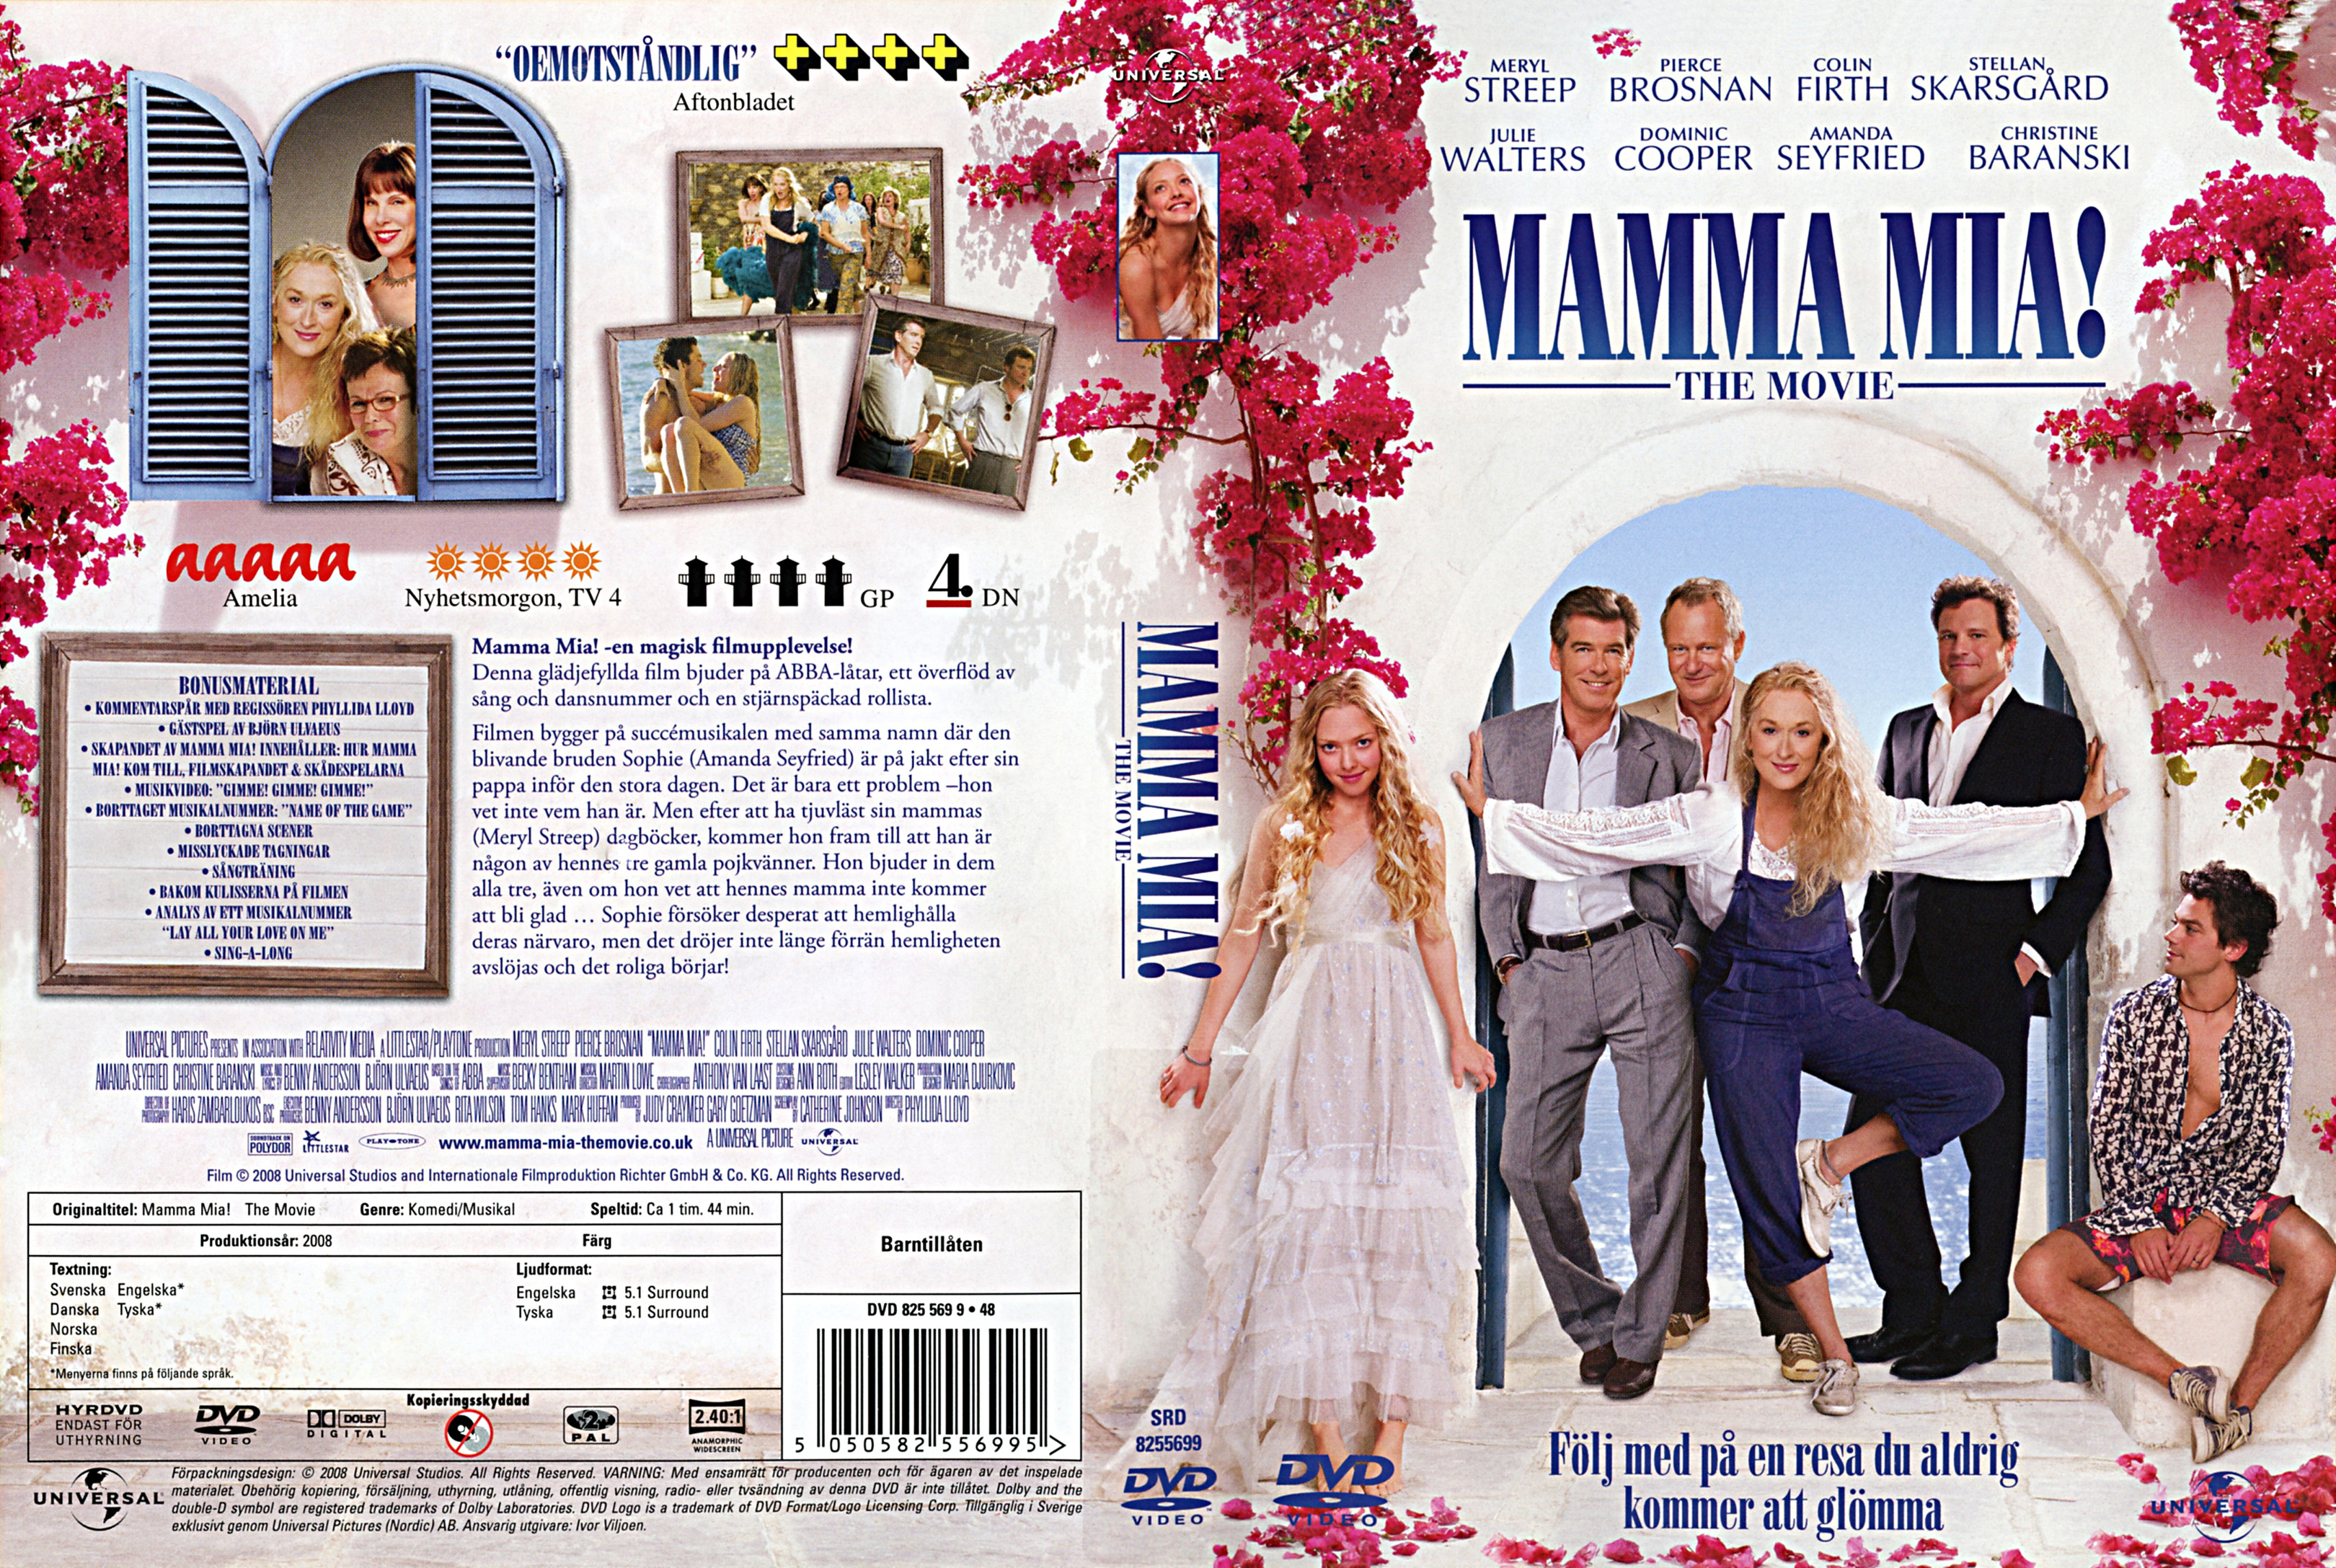 Mamma mia movie dvd